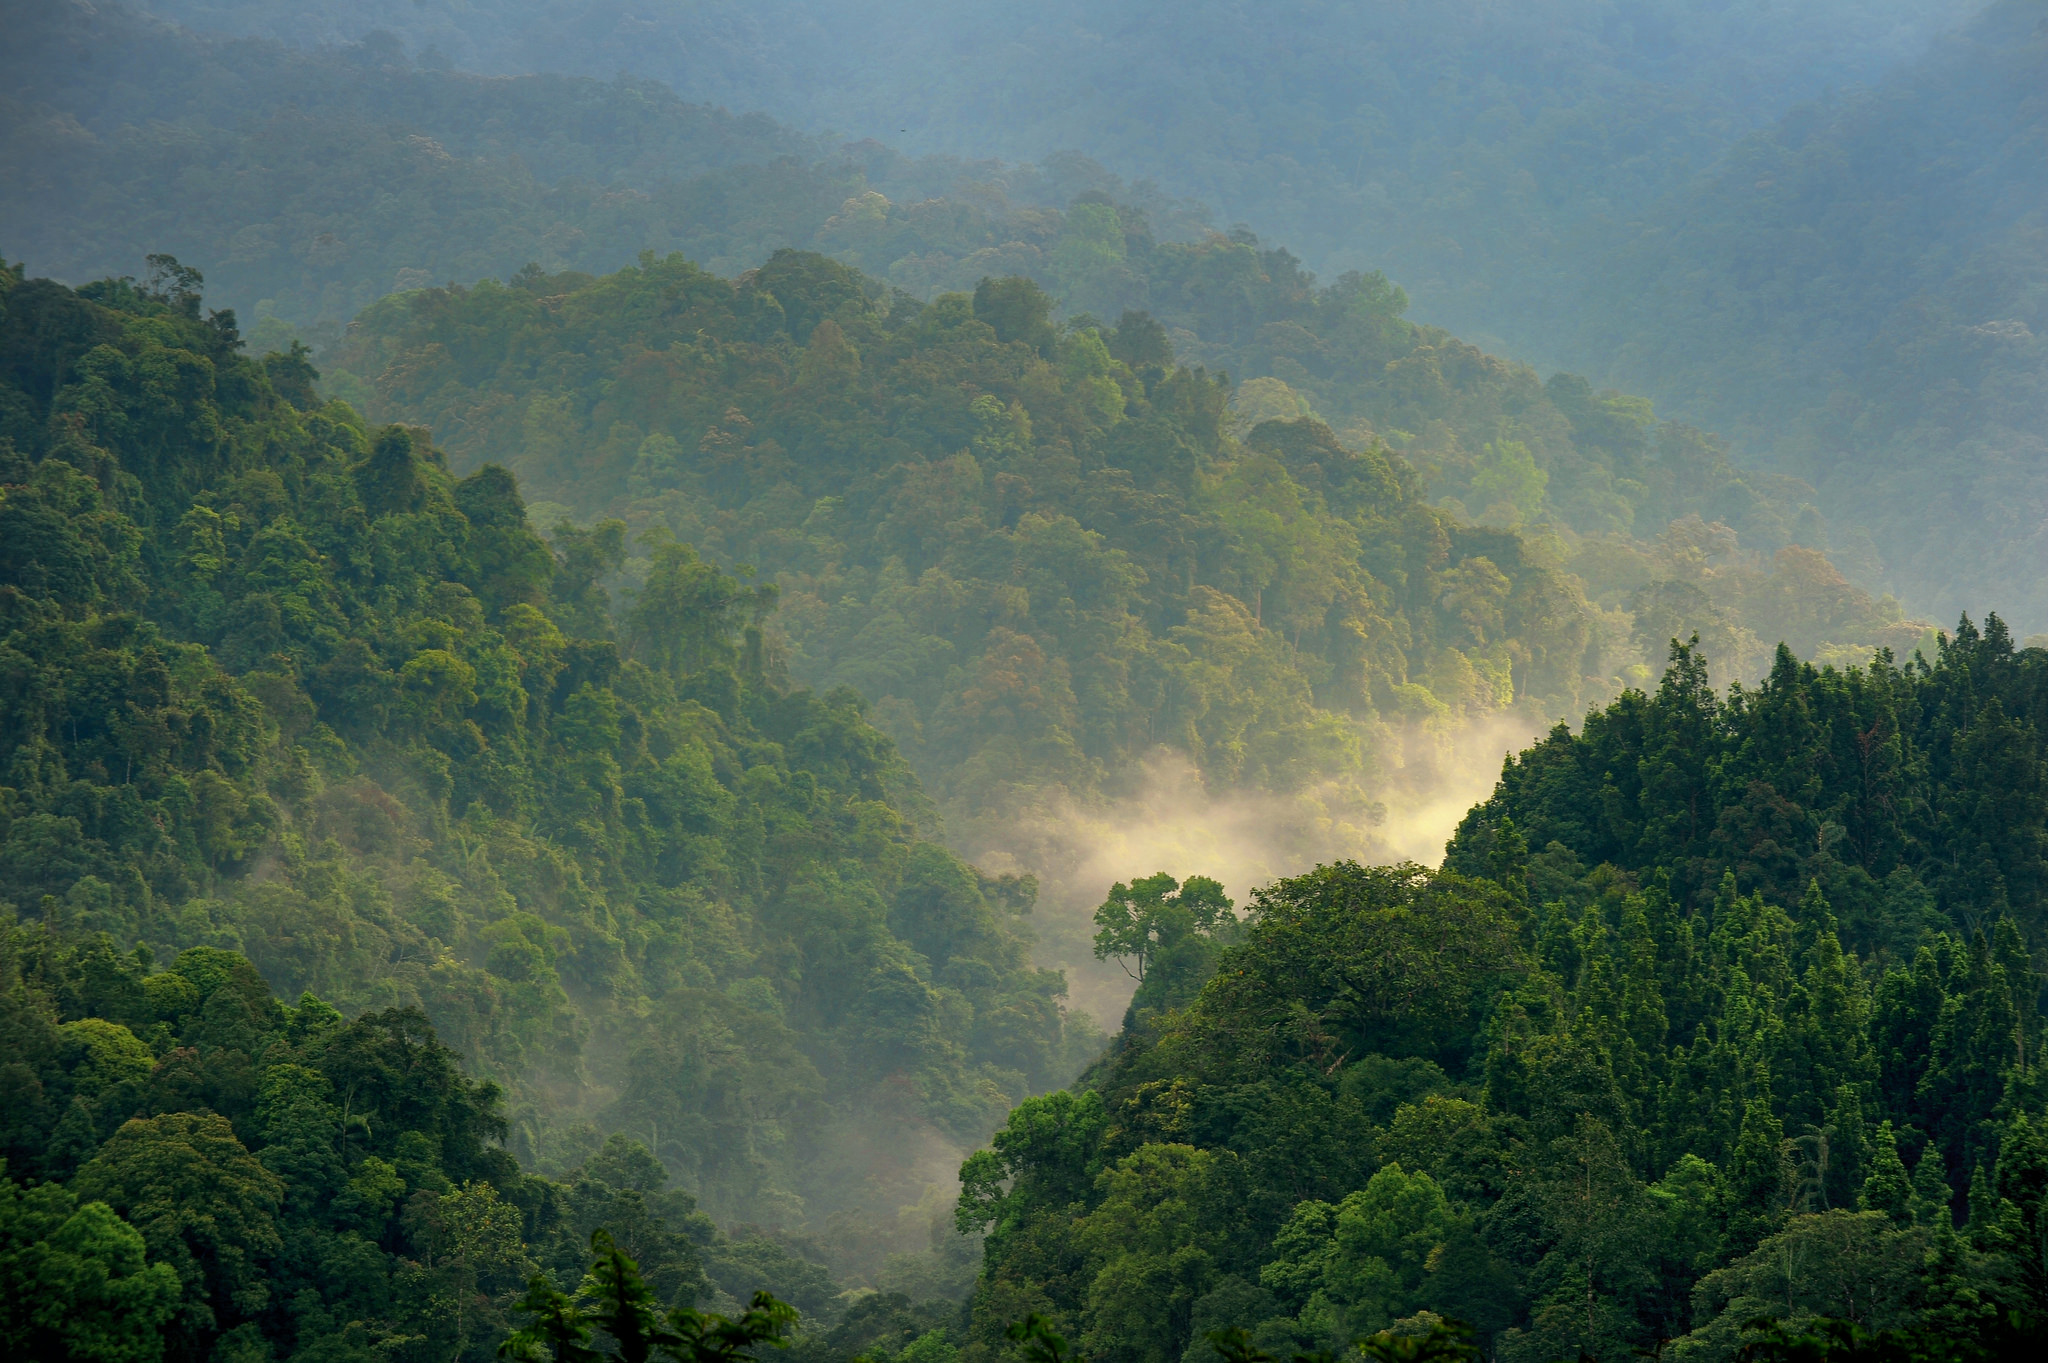 International Day of Forests 2016: What's the state of the world's forests?